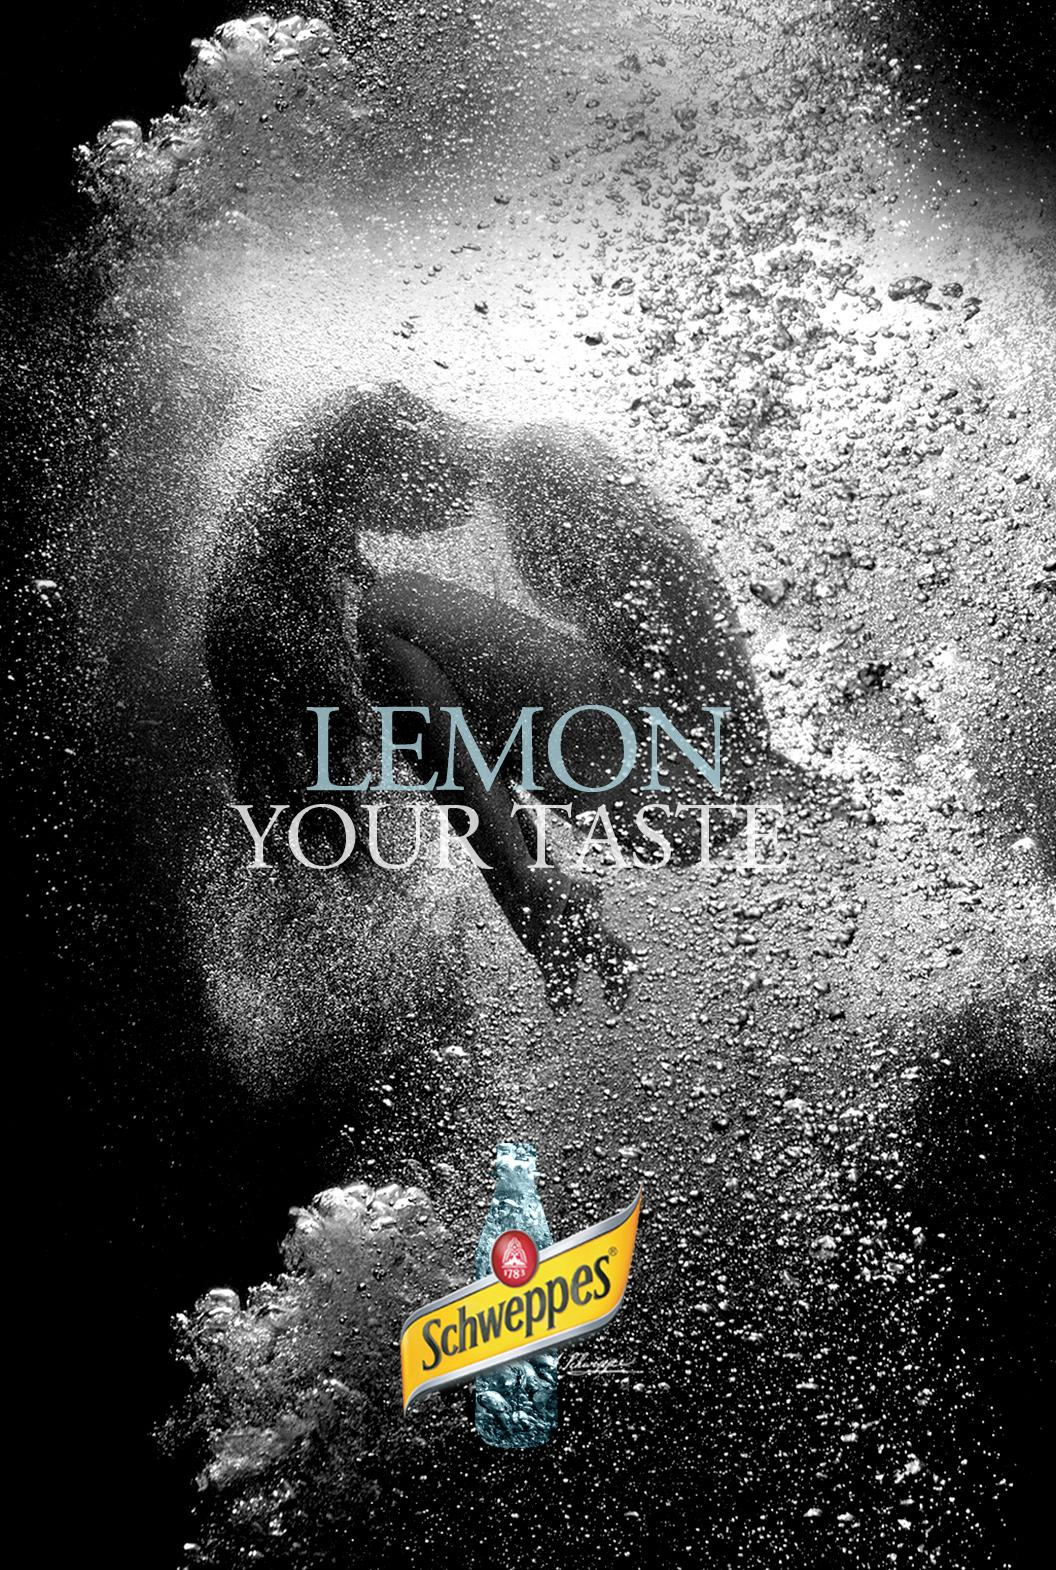 Schweppes Outdoor Ad -  Lemon